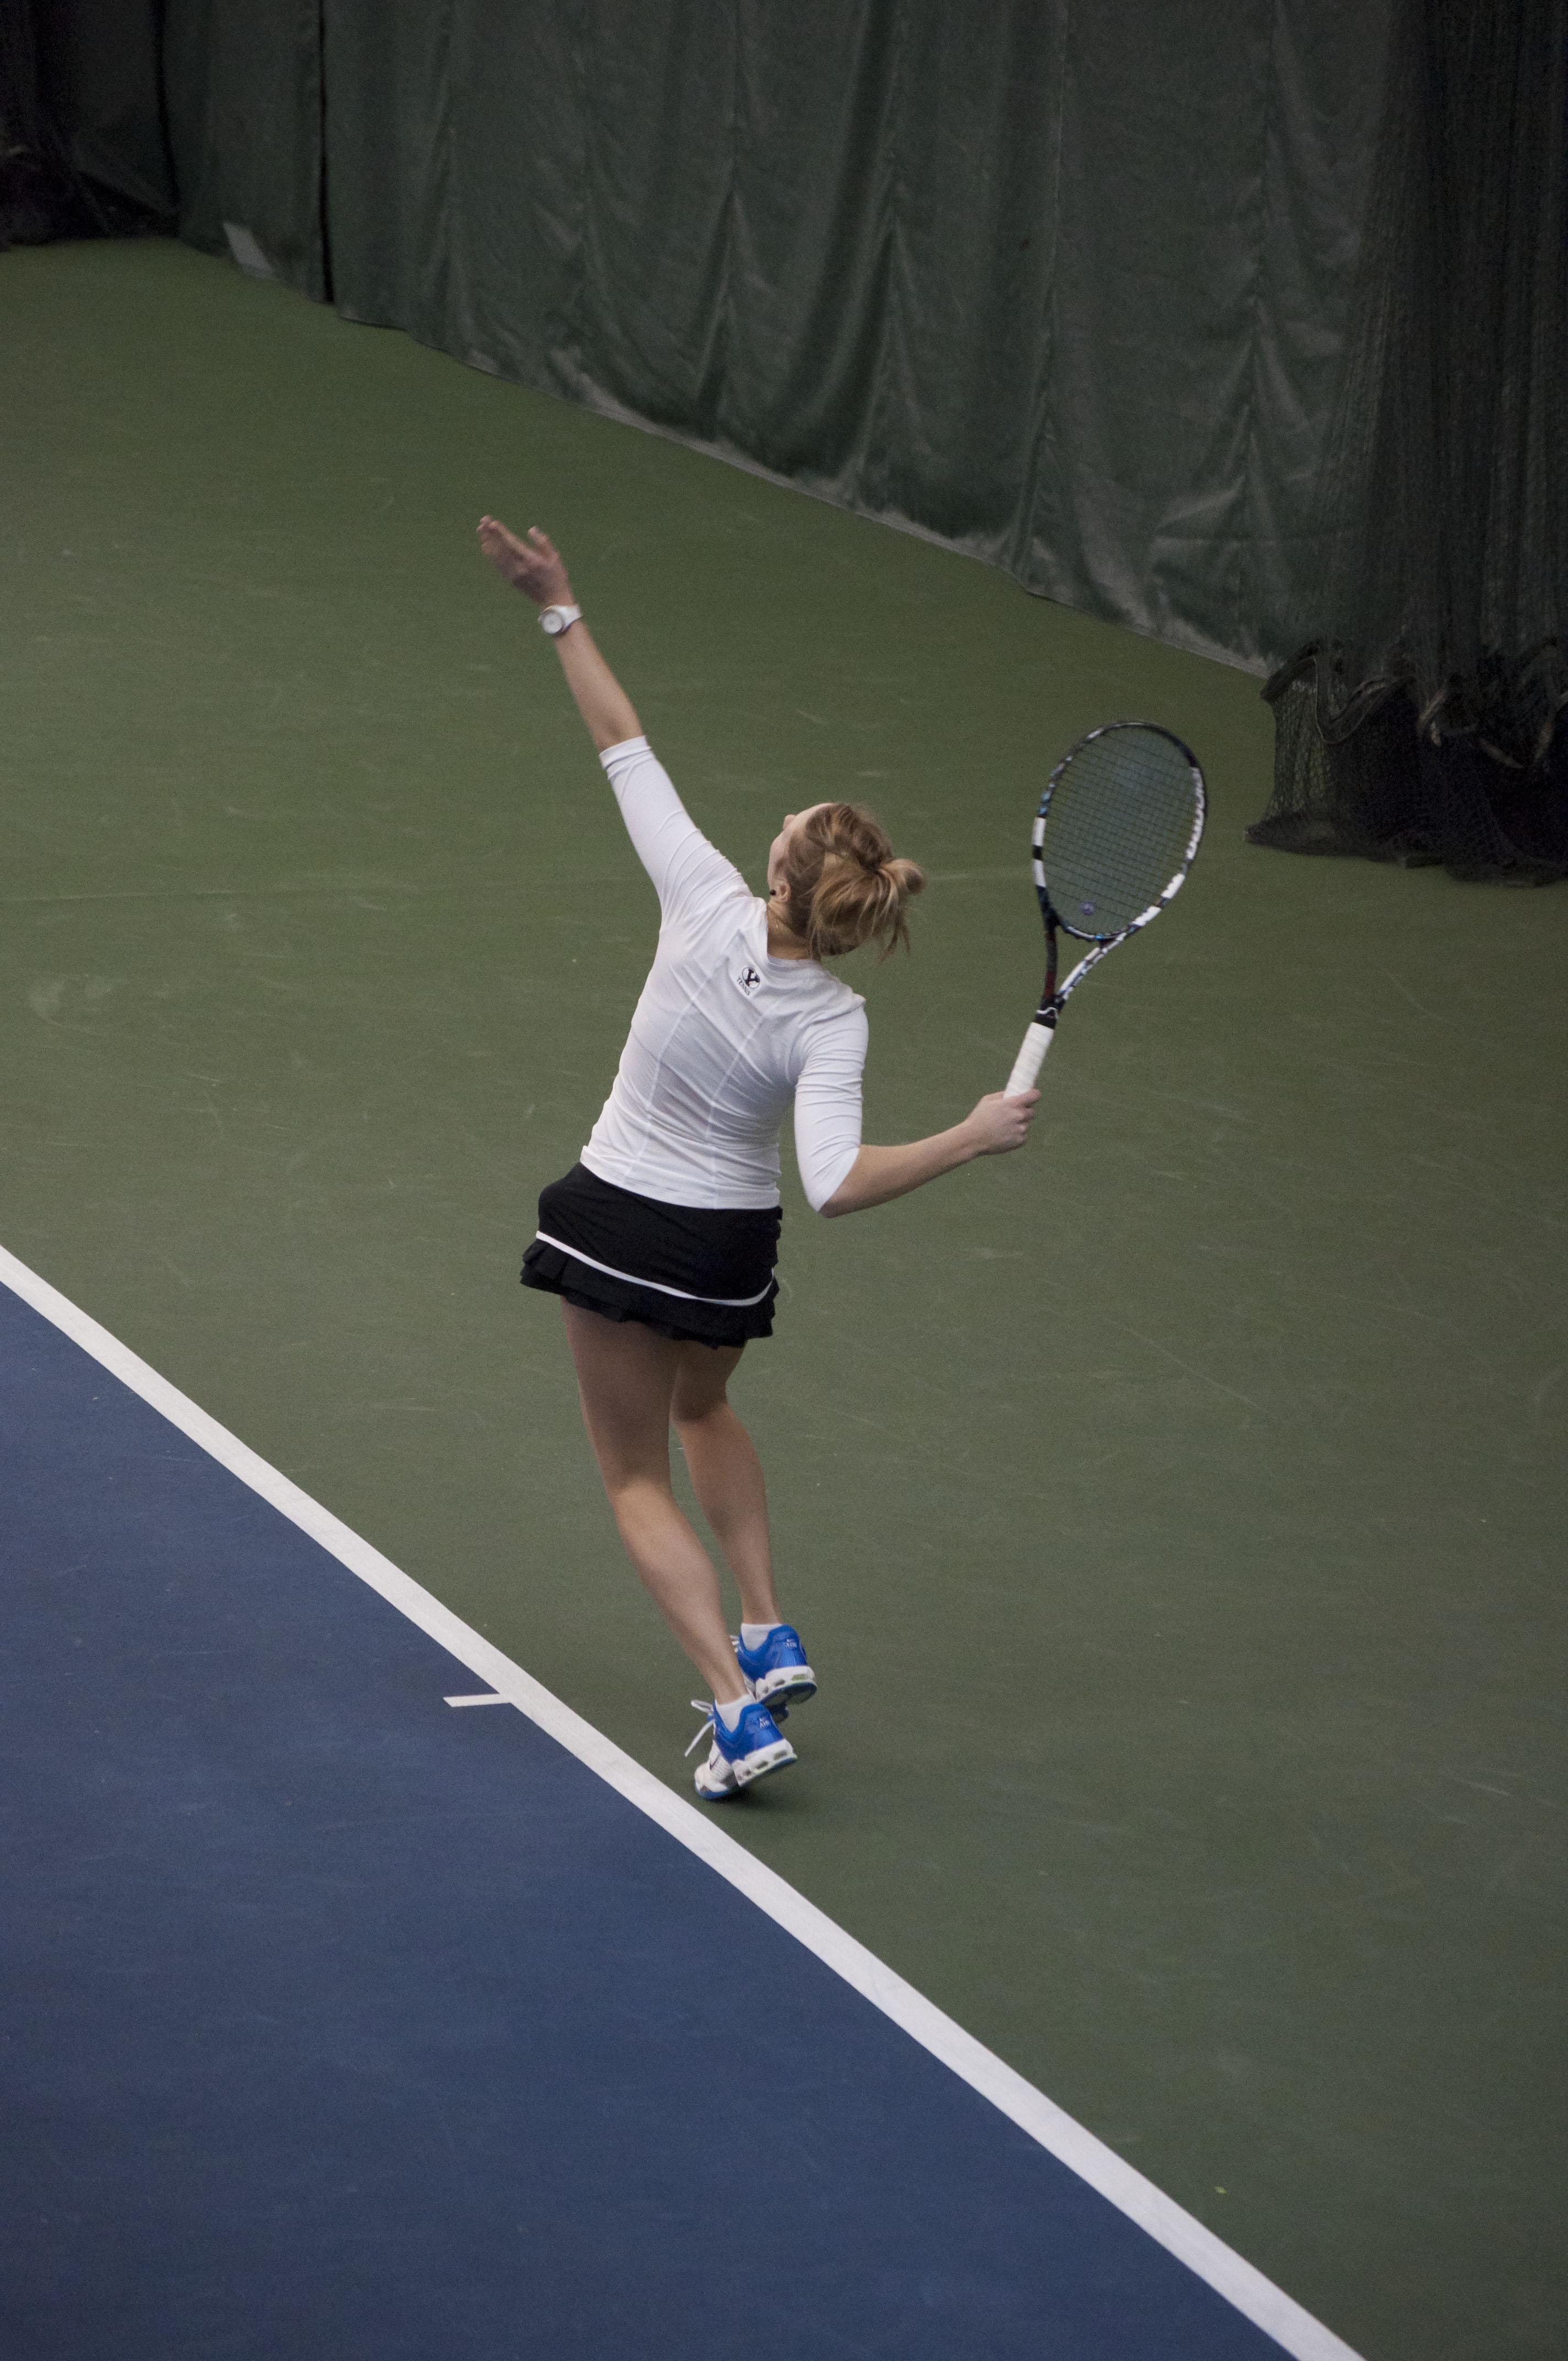 Morgan Anderson serves in her Feb. 8 match. The Cougars take on Gonzaga Saturday. (Photo Sarah Hill)